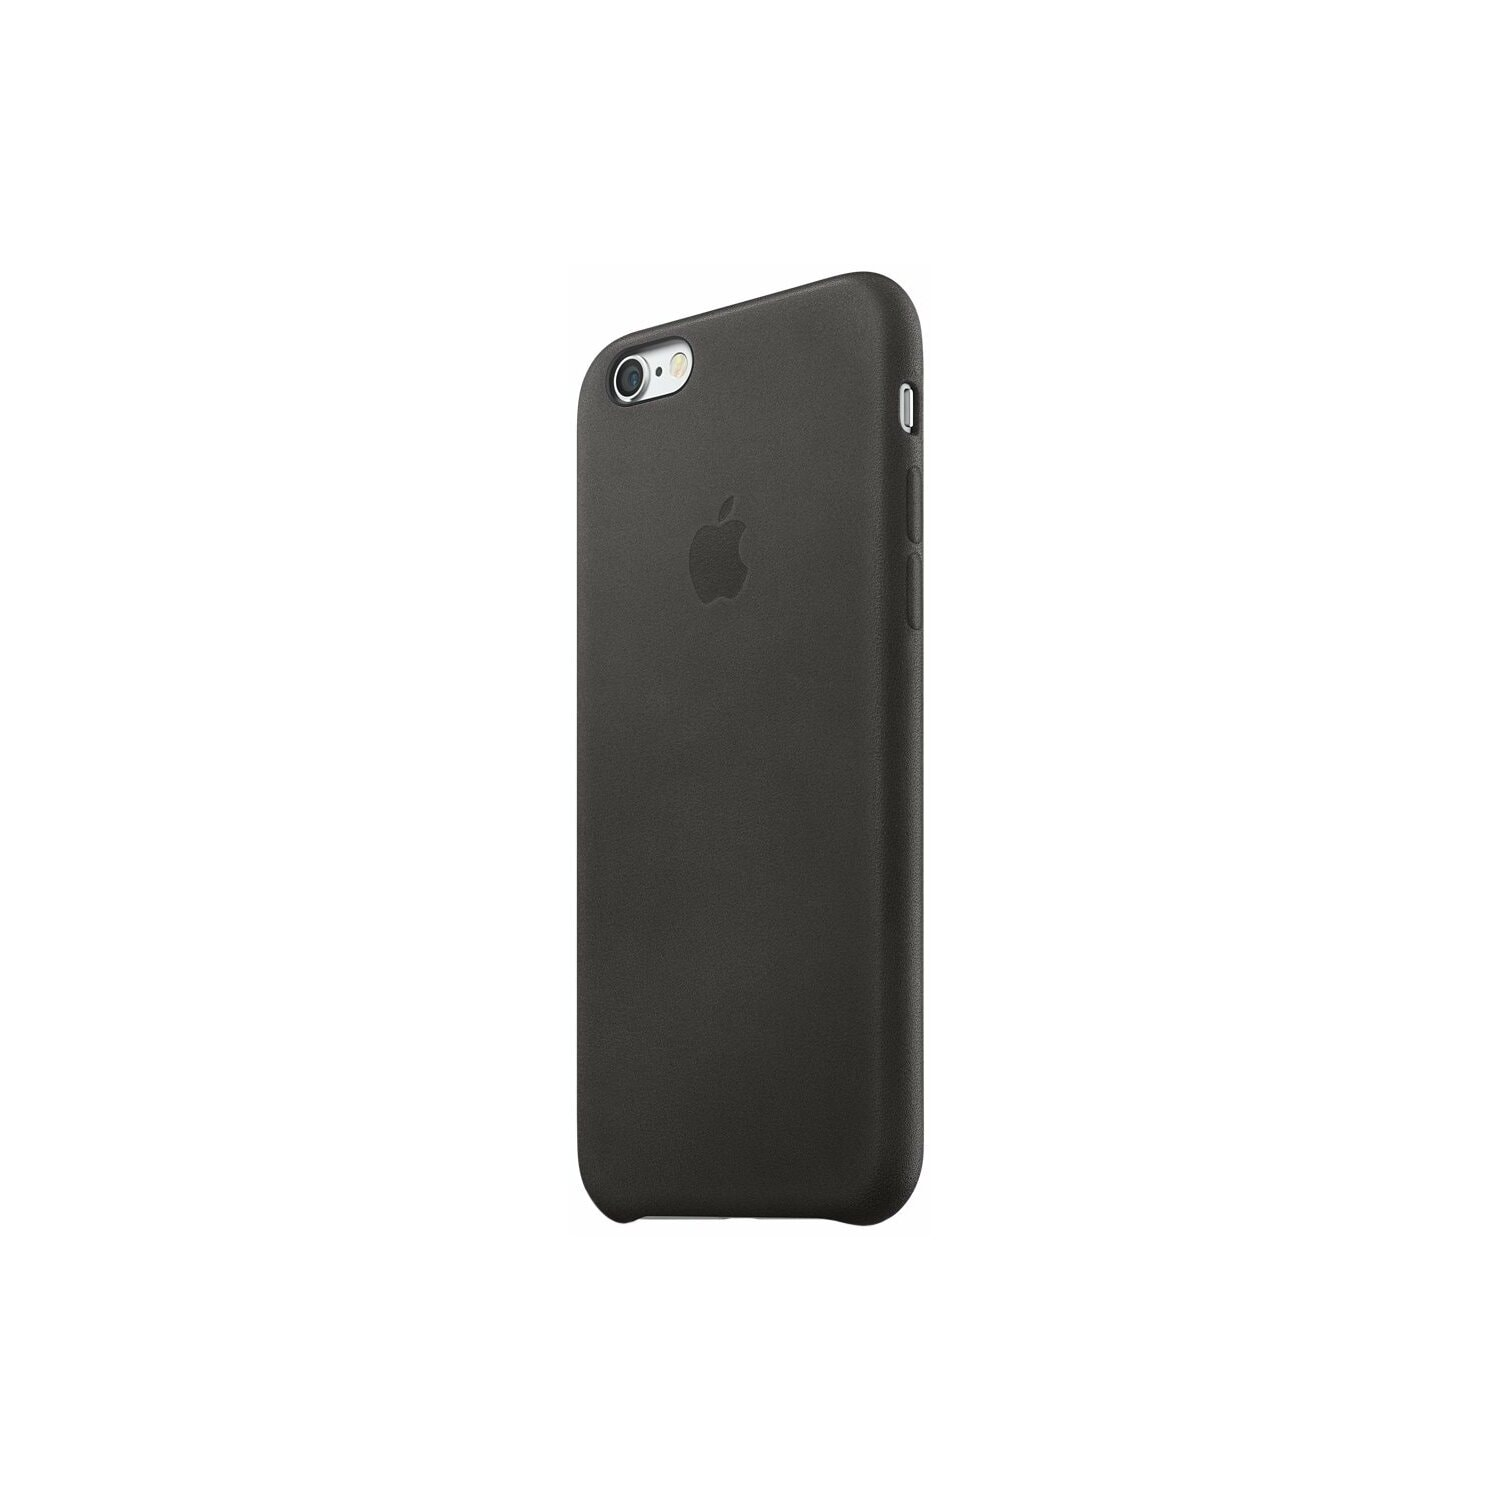 Skórzane etui APPLE do iPhone 6/6s Czarny MKXW2ZM/A